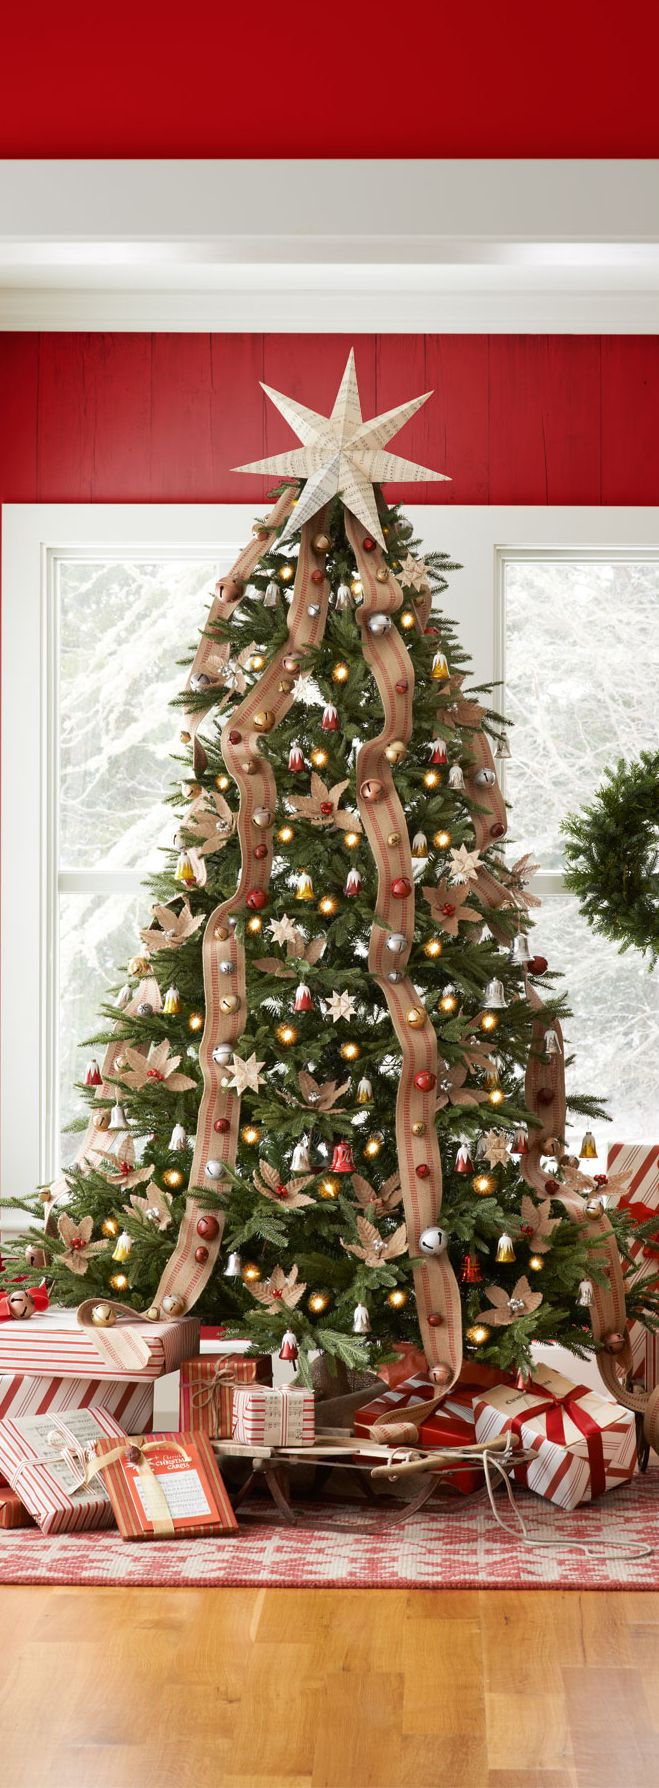 Christmas Tree Decorated Professionally : Best images about christmas on stockings